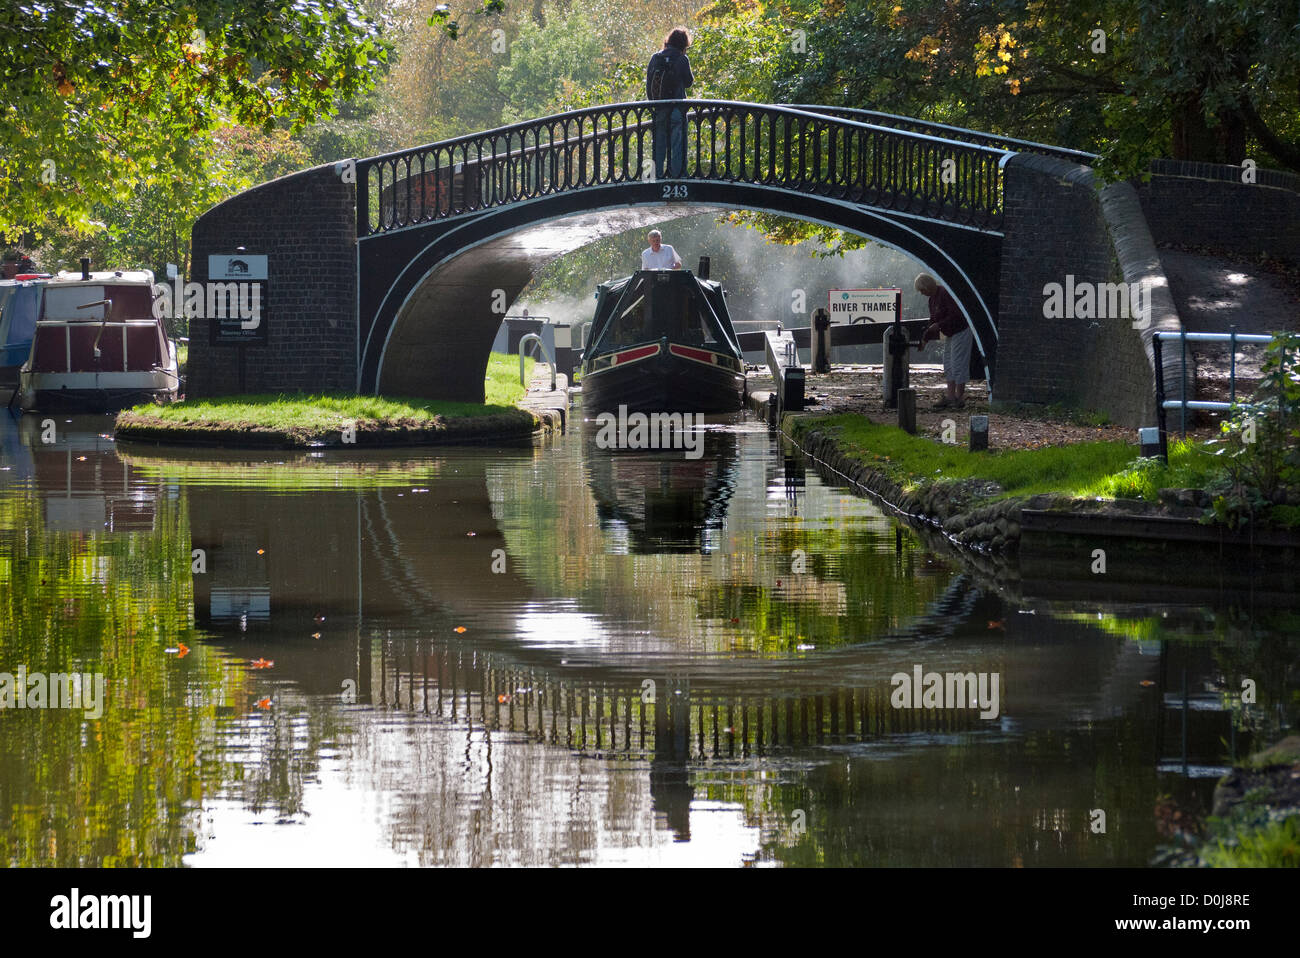 Houseboats on the Oxford Canal in autumn. - Stock Image